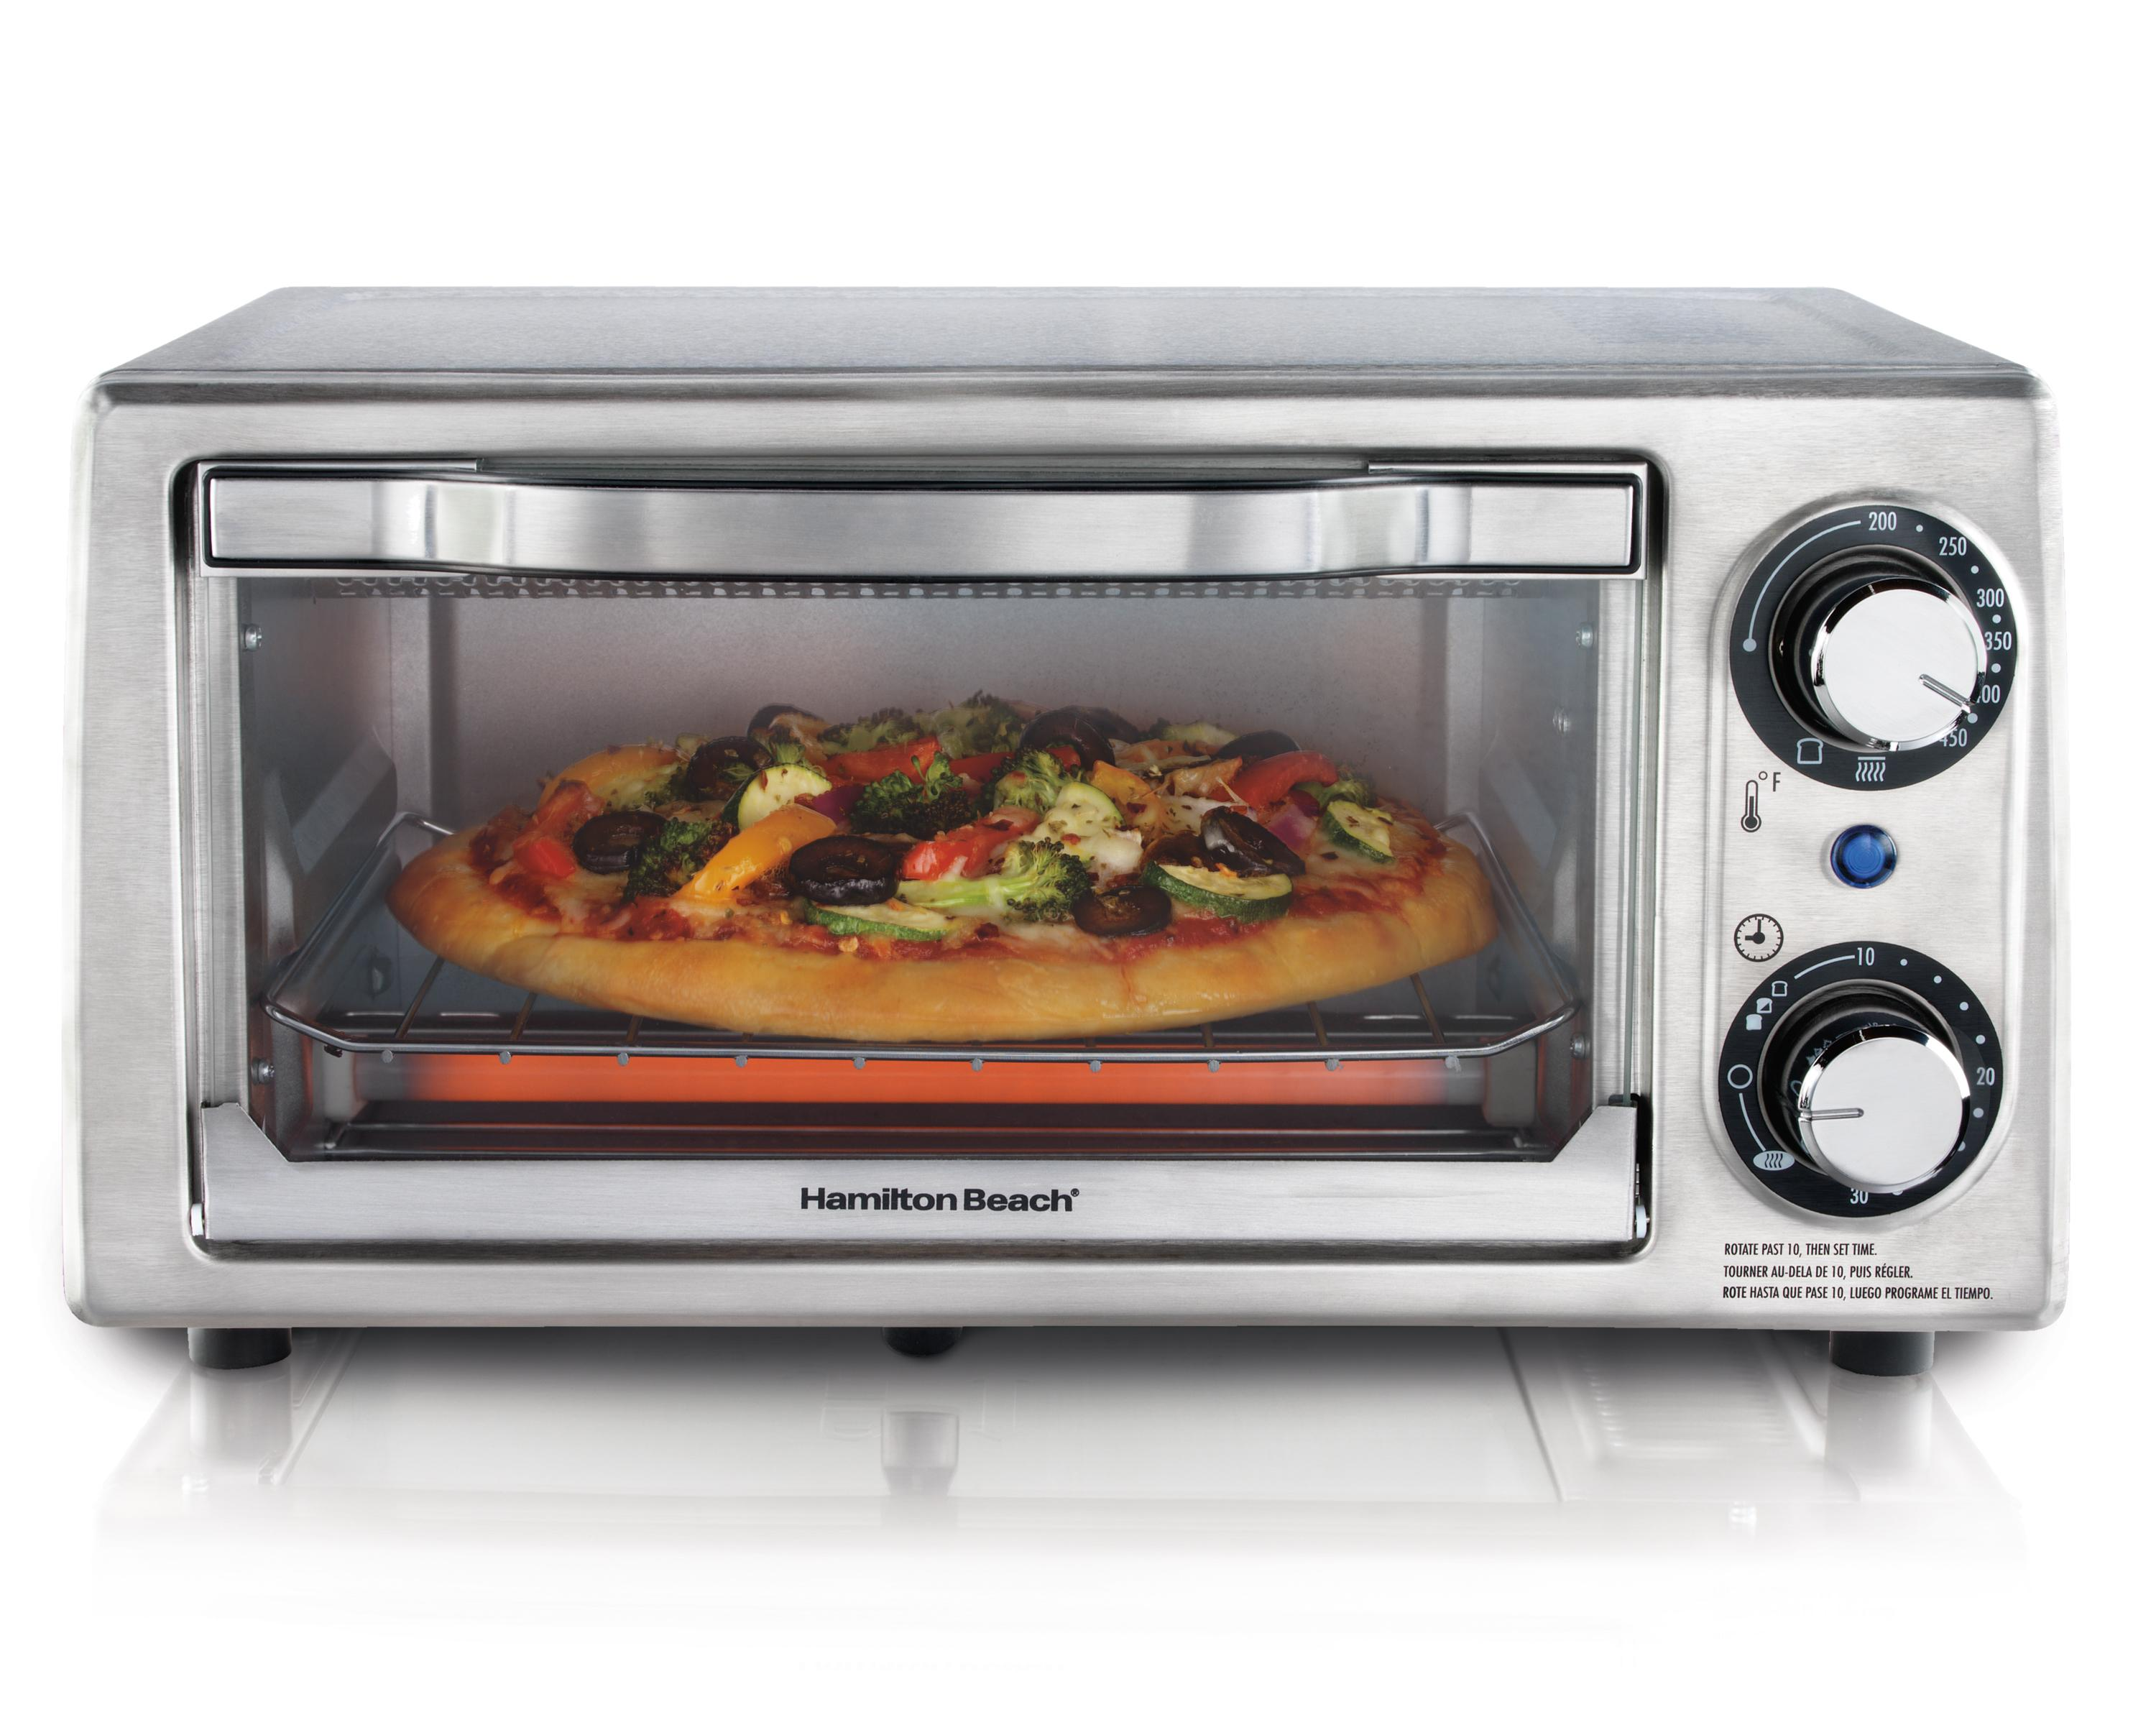 oven and toaster slice breville delonghi convection